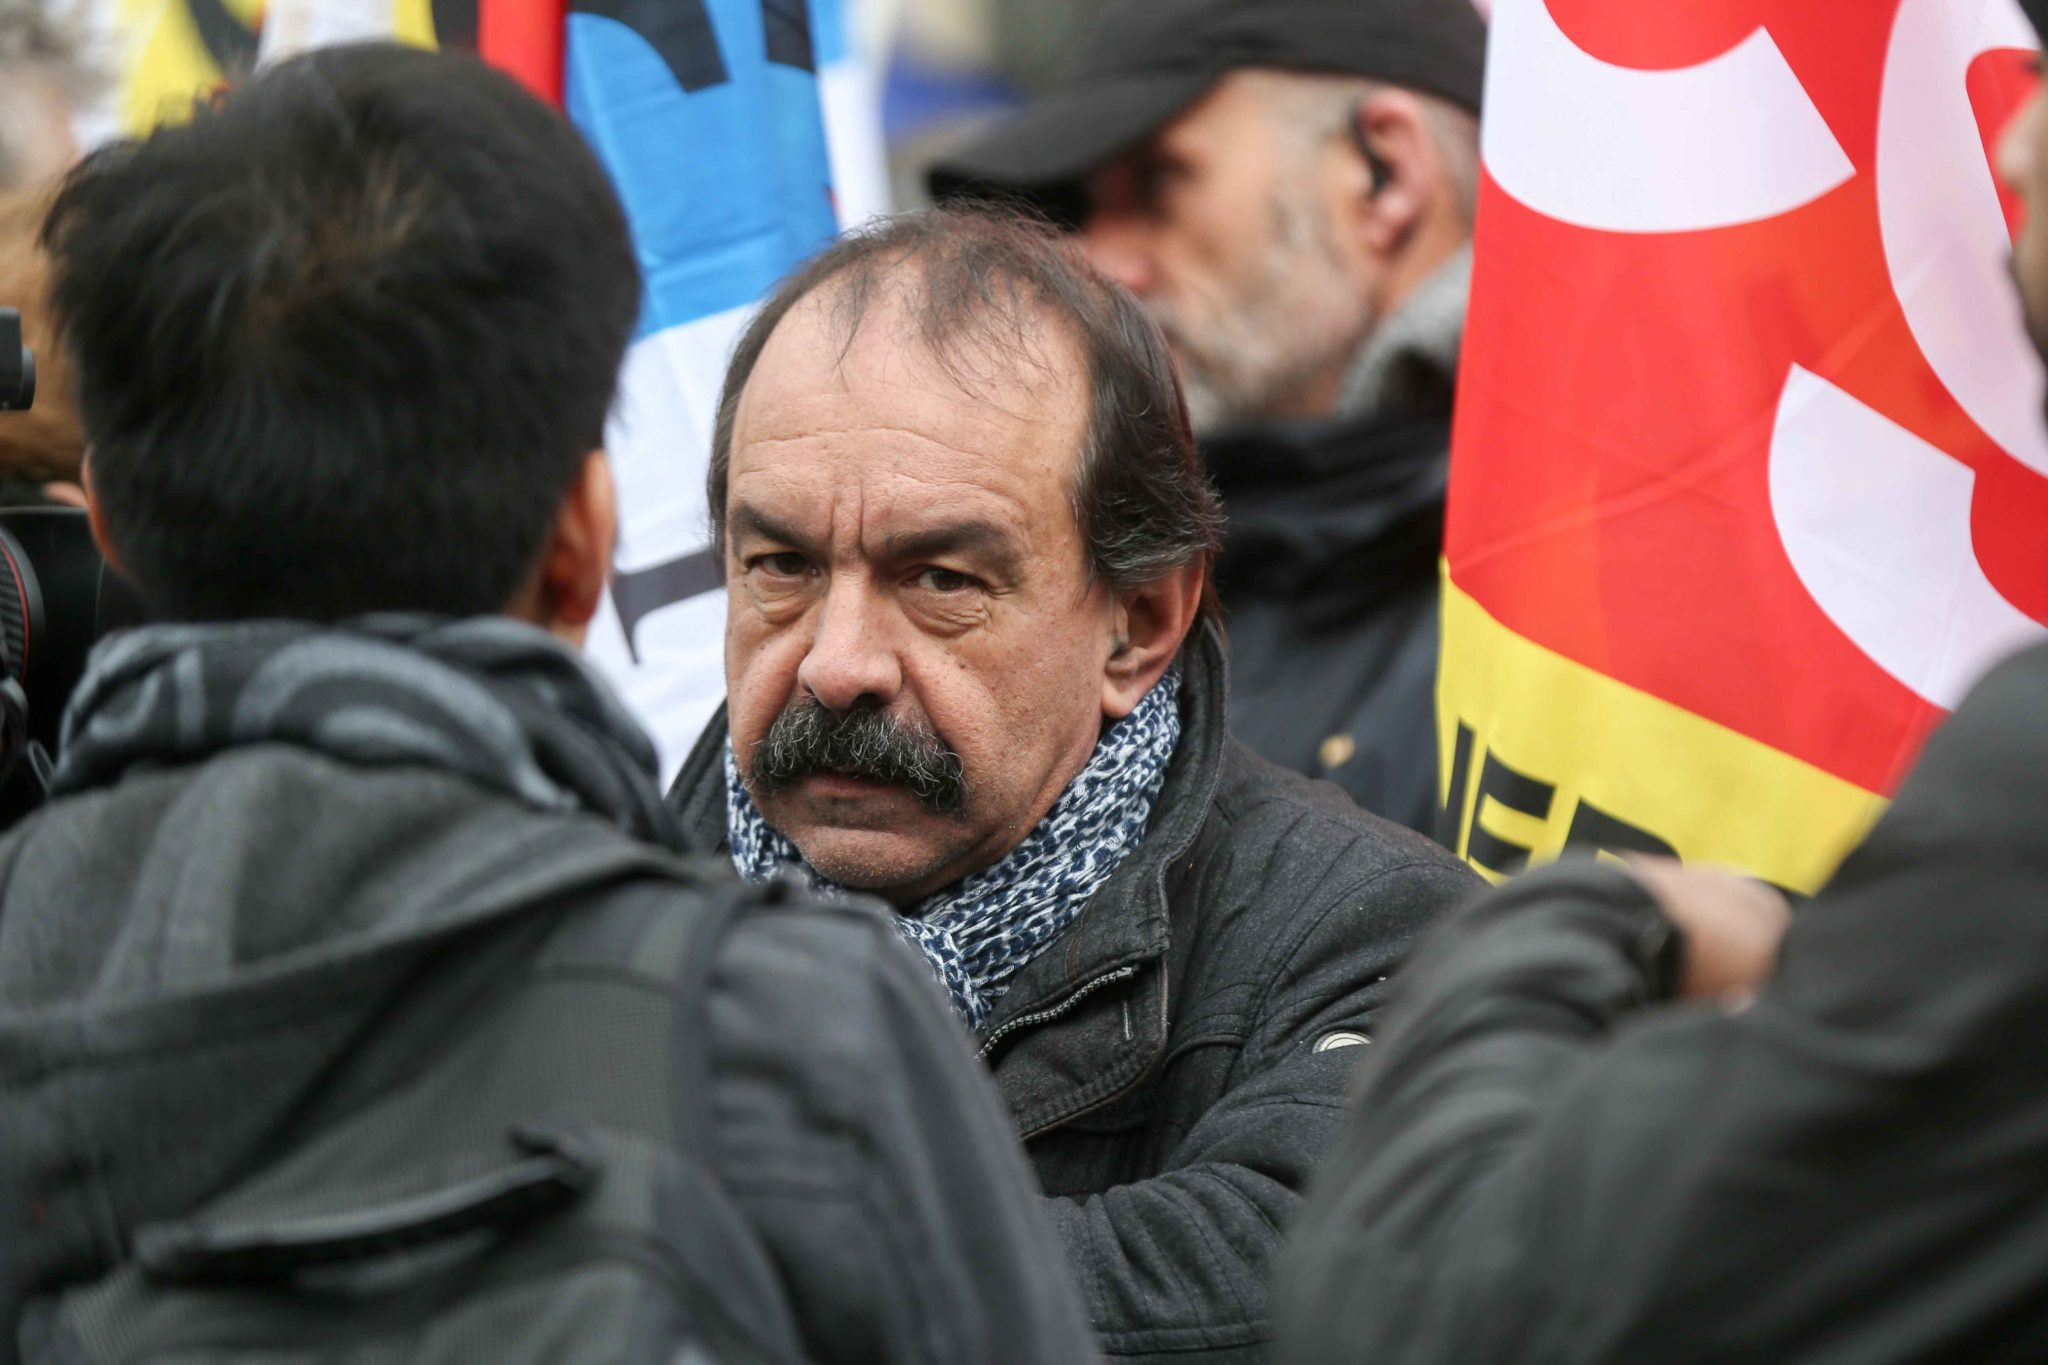 CGT union leader Philippe Martinez (C) takes part in a demonstration in Paris, on January 11, 2020, as part of a nationwide multi-sector strike against the French government's pensions overhaul. The country has been hit by 37 days of crippling train and me